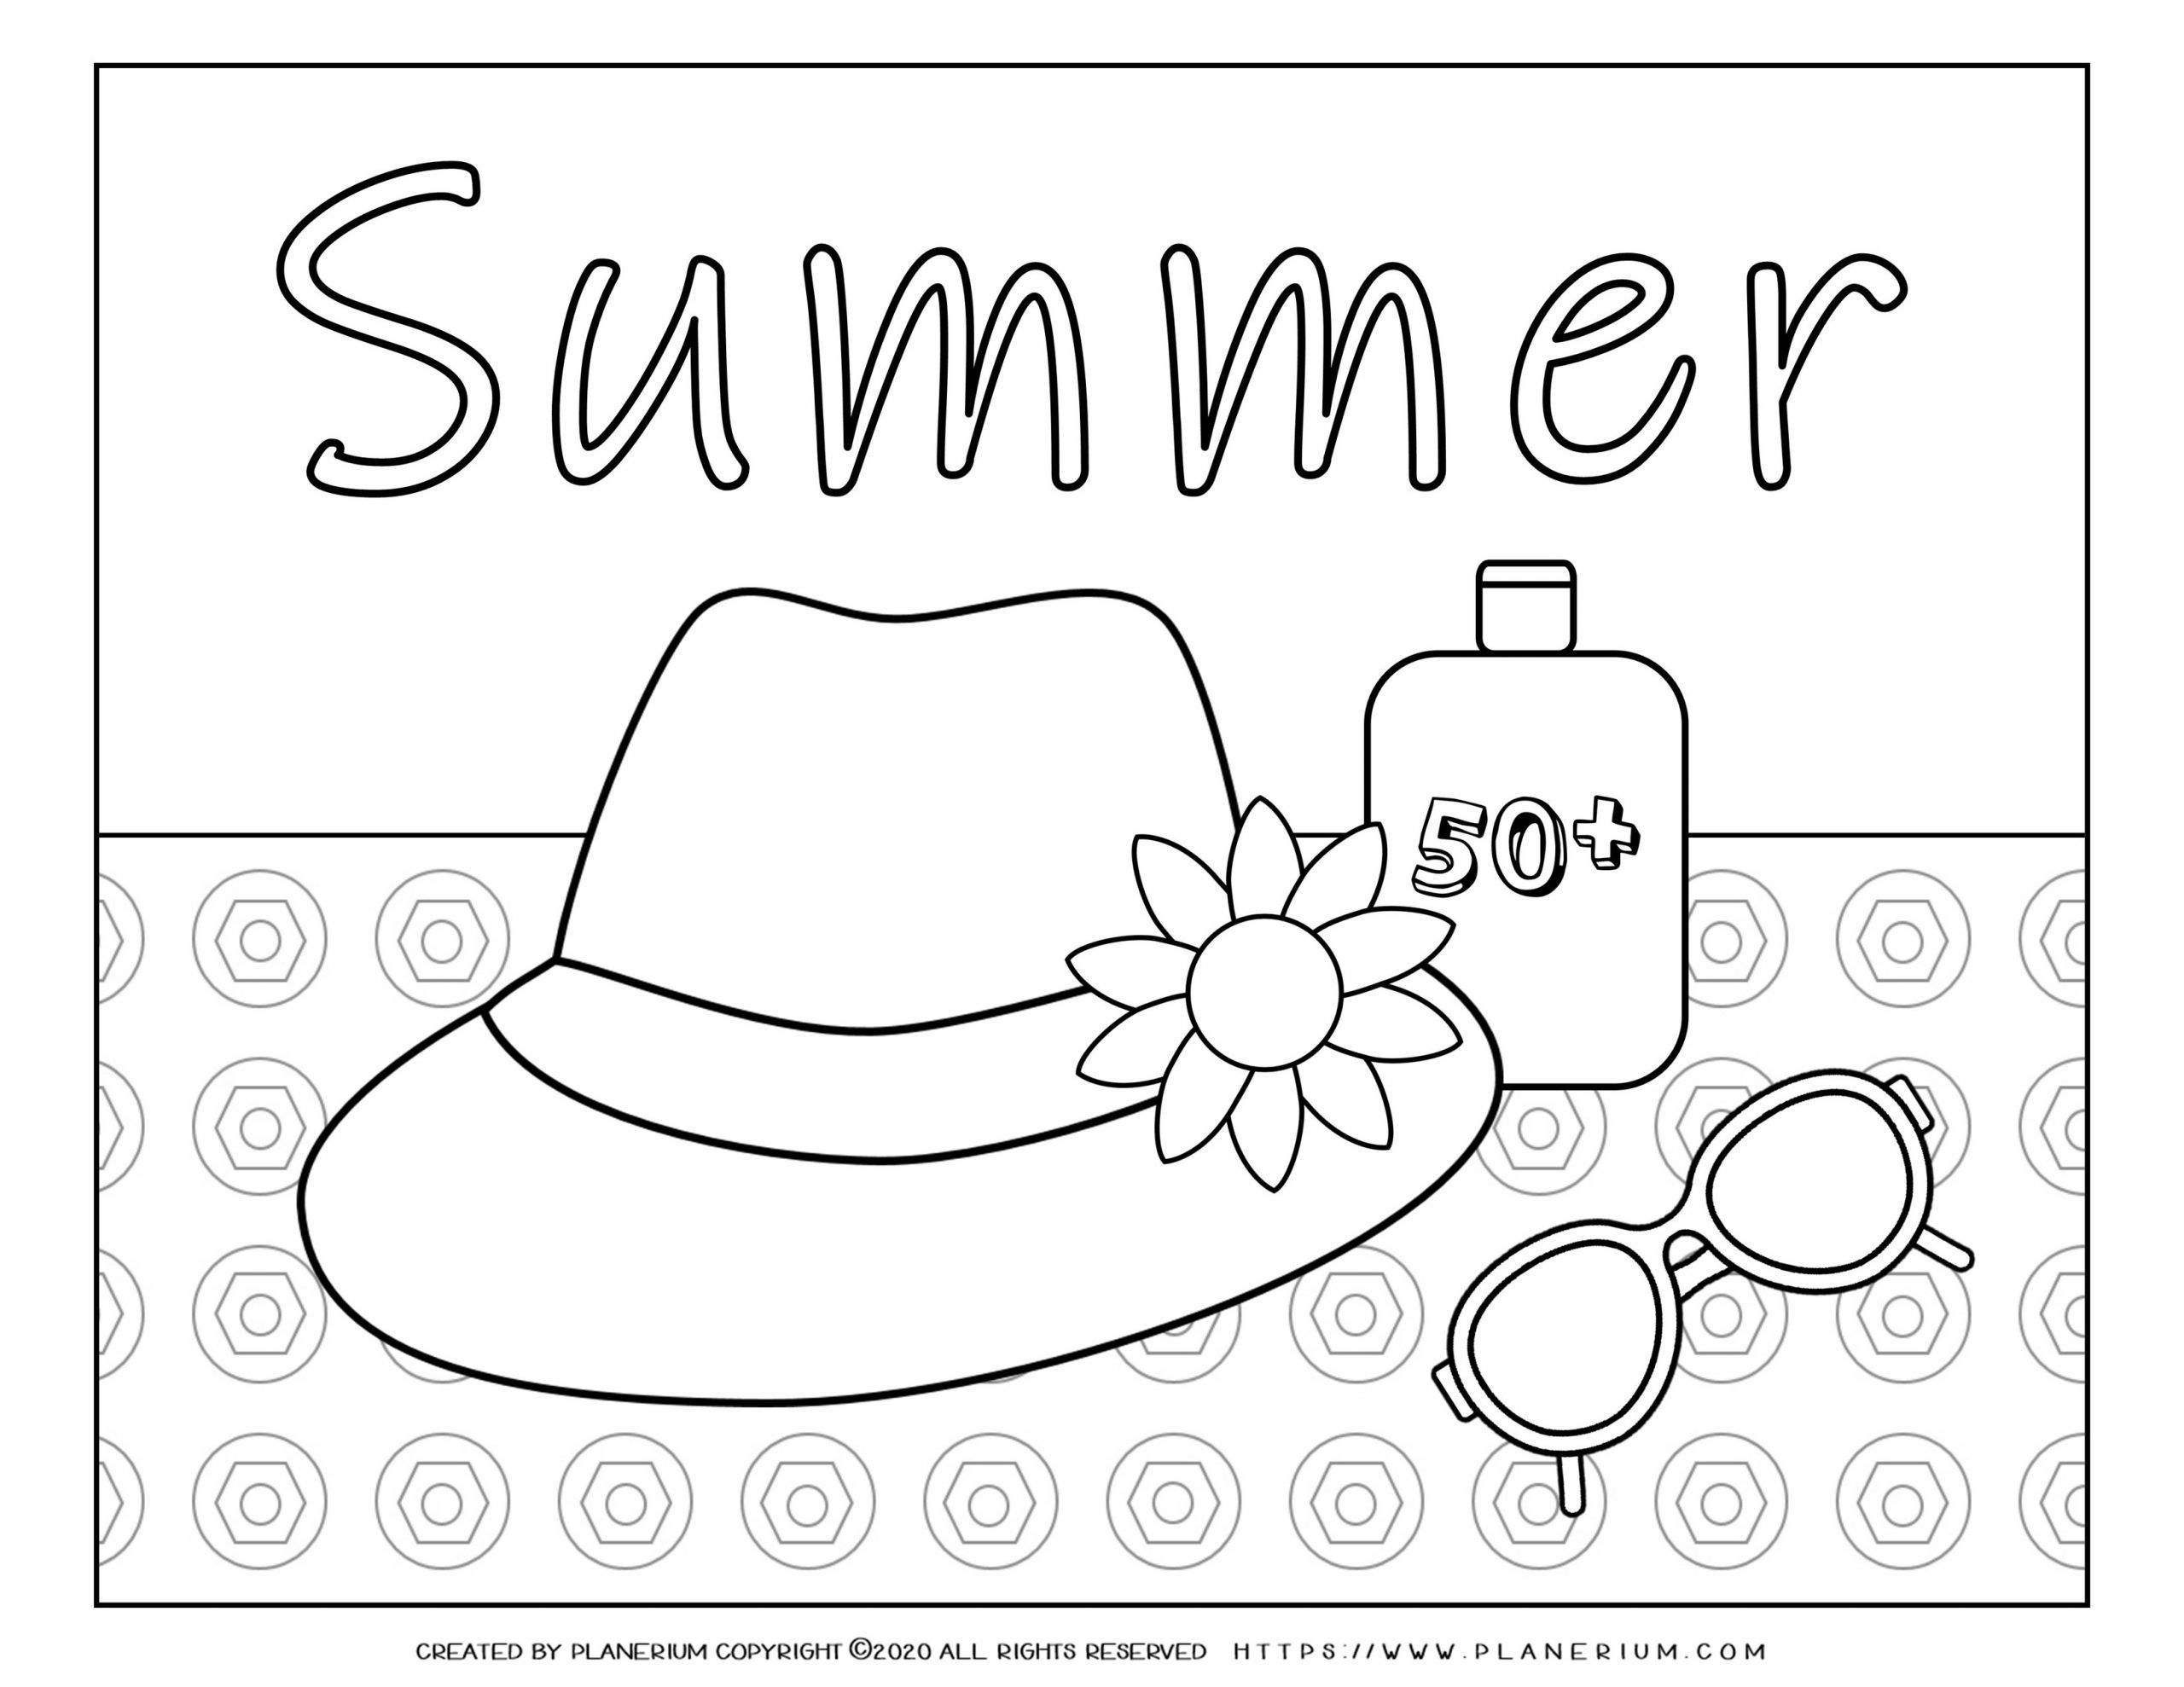 Summer - Coloring Page - Hat Sunglasses Sunscreen